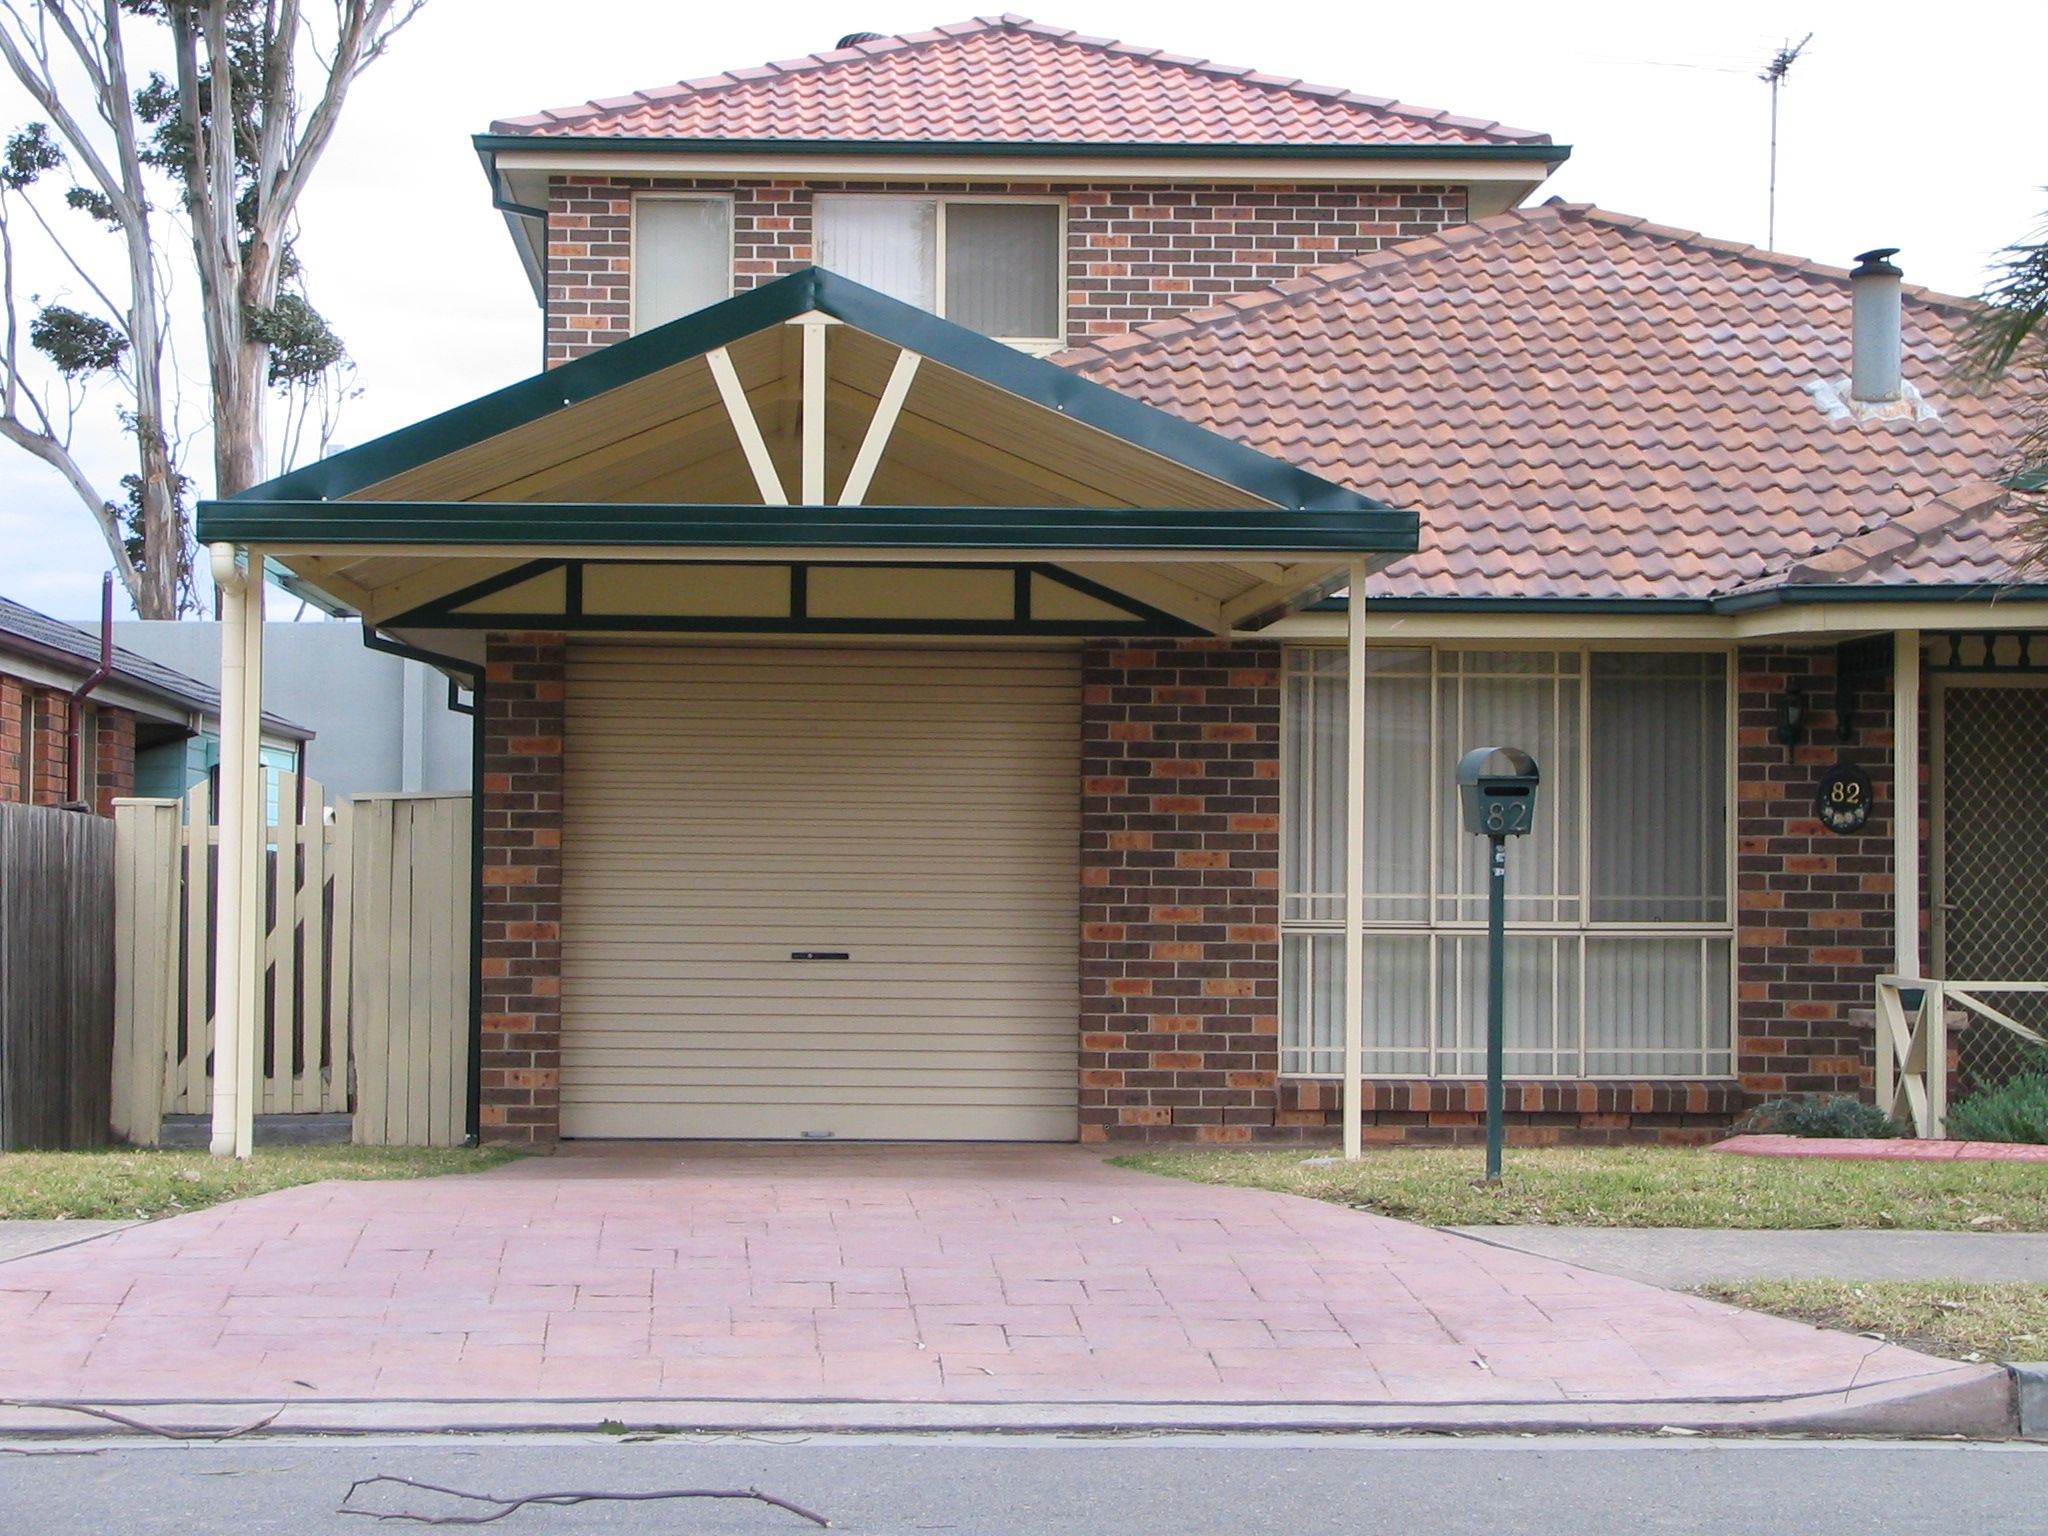 Attached Carport to House See 5 Top Designs up to 6 Tips